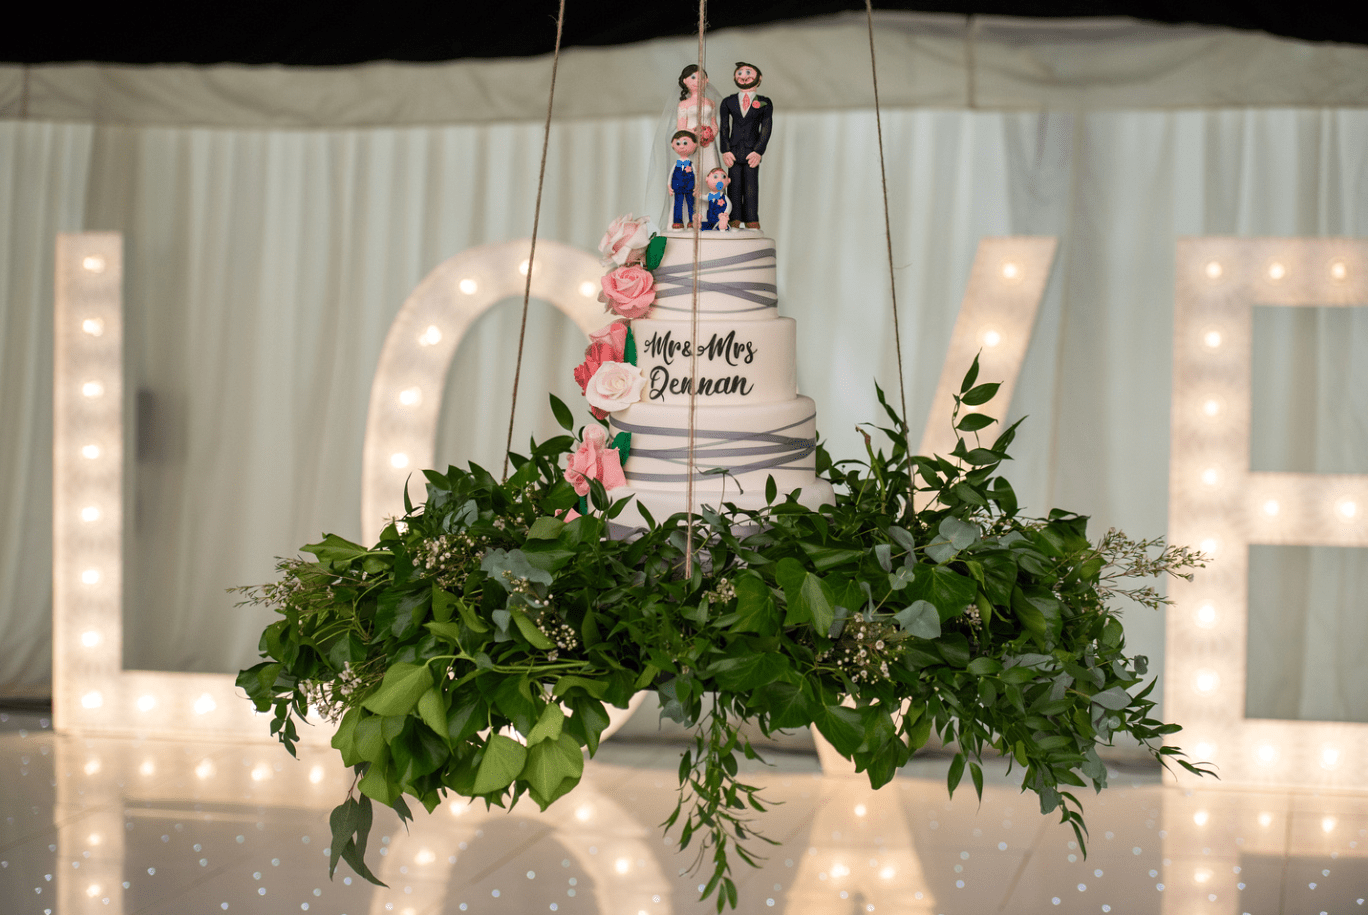 Wedding cake suspended from the ceiling at Soughton Hall